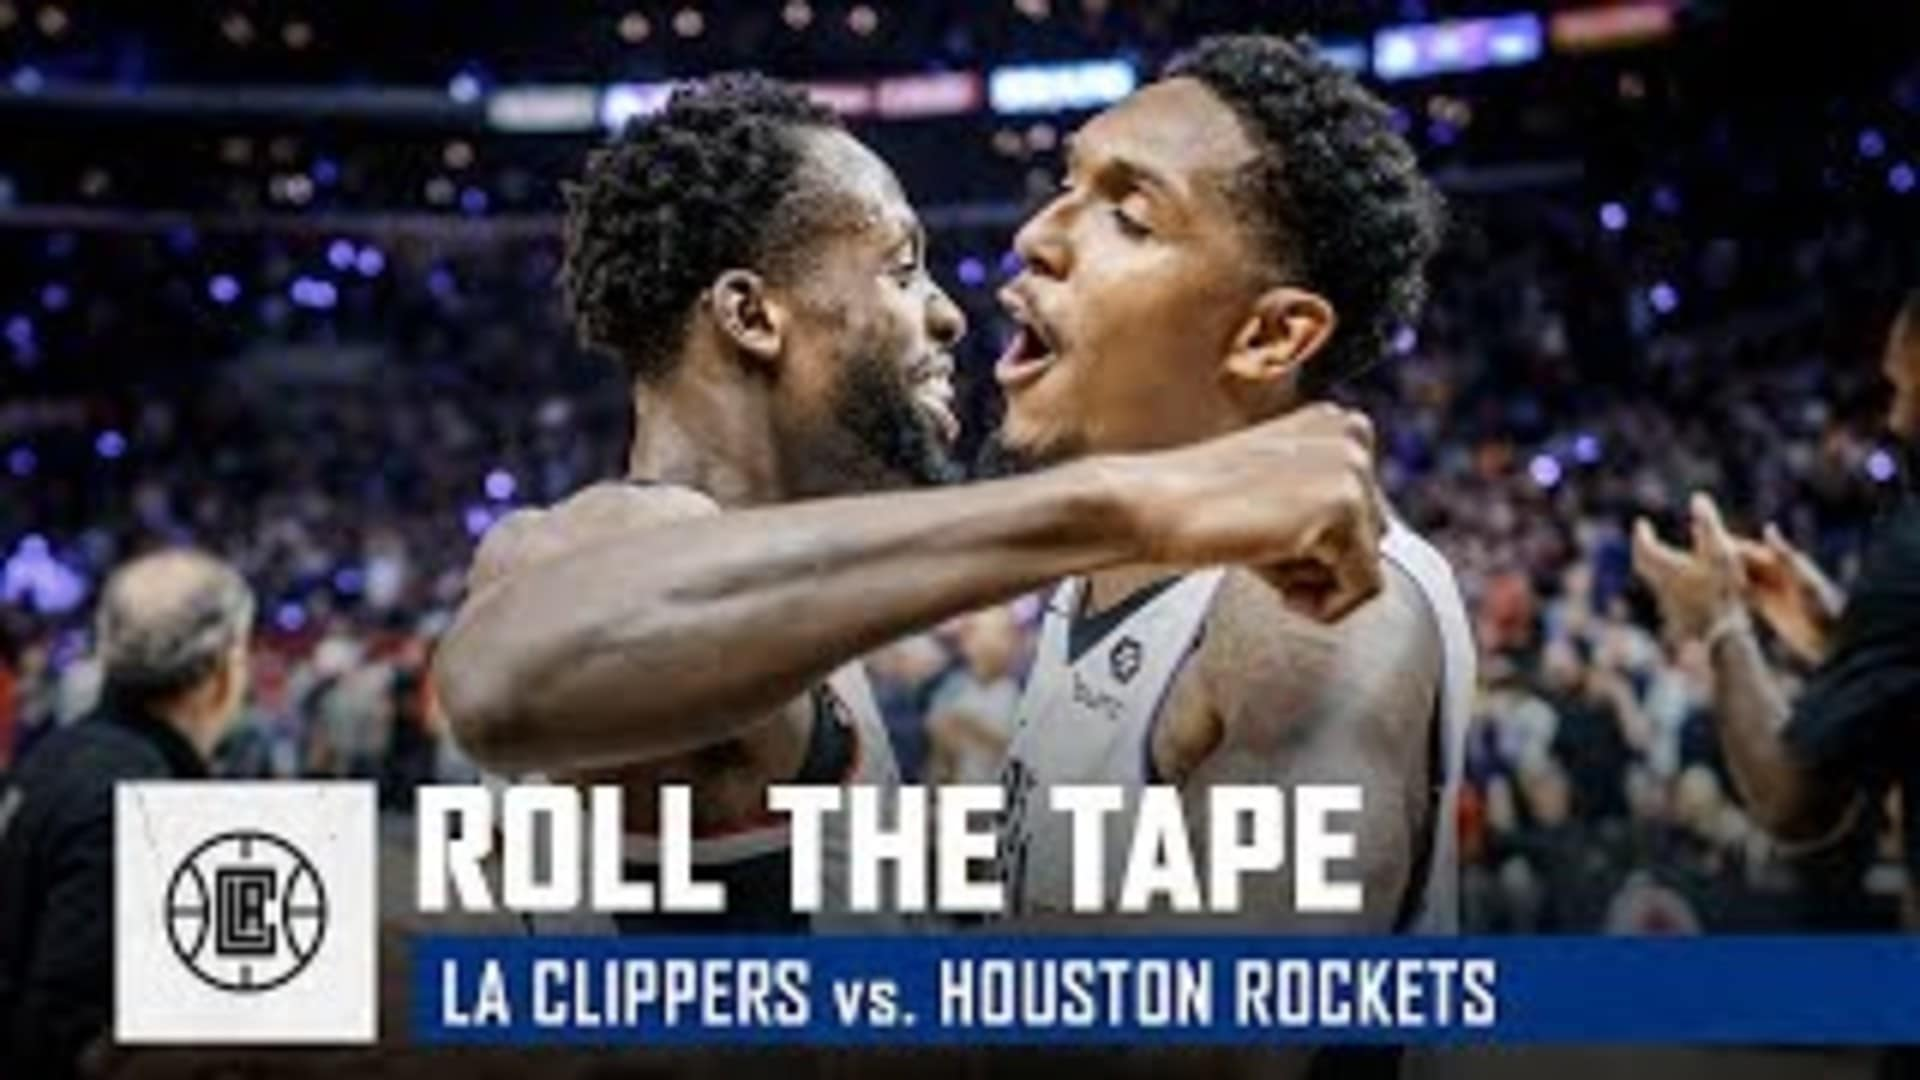 Clippers Grind Out Thrilling Win vs. Rockets | Roll the Tape